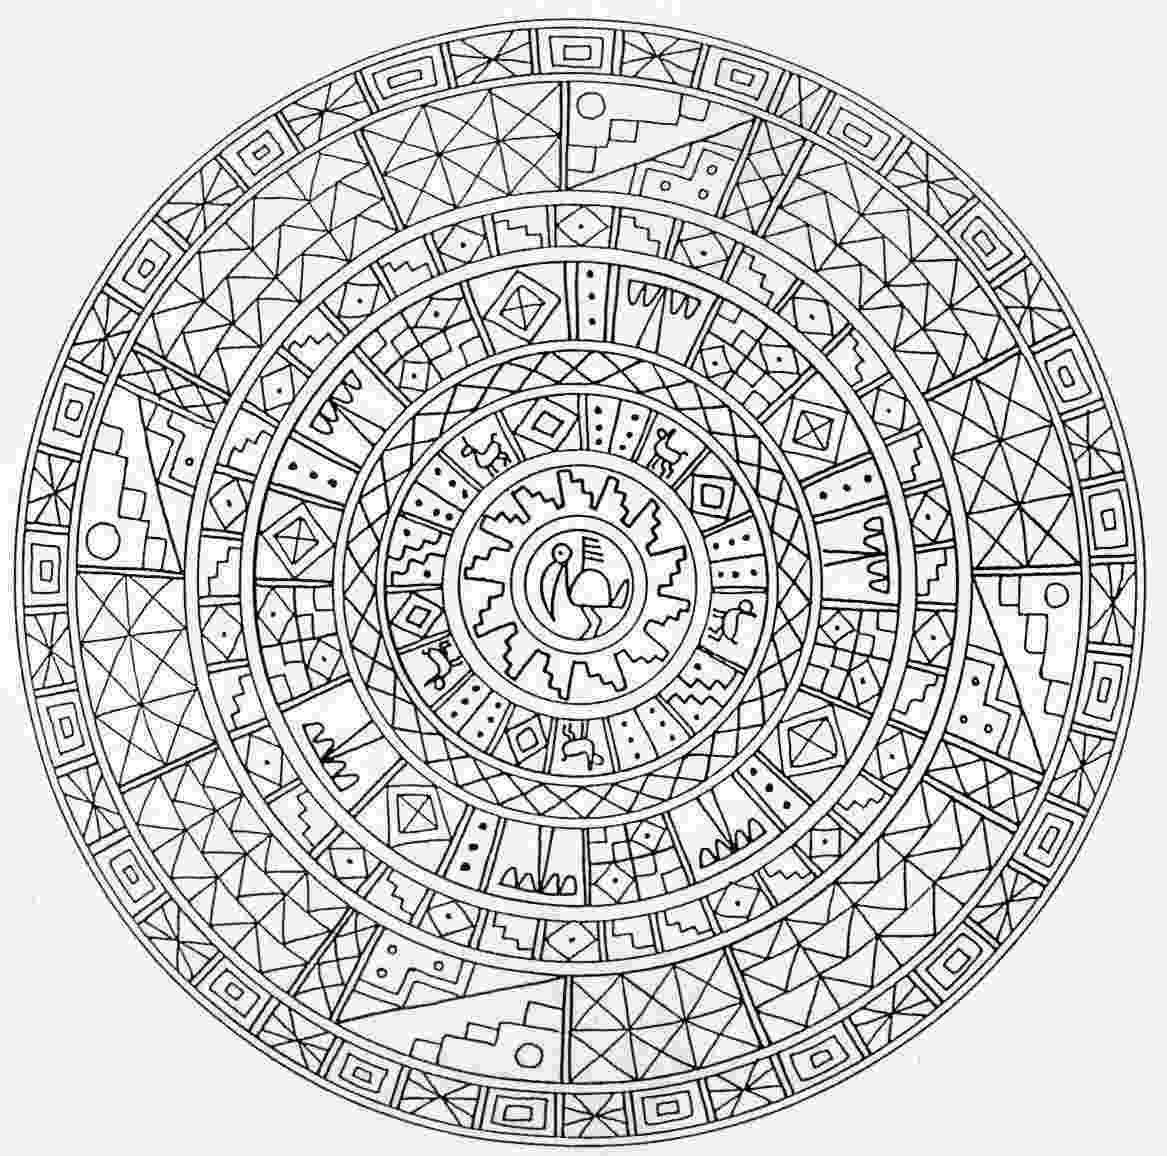 free online mandala coloring pages for adults free printable mandala coloring pages for adults best for free adults pages coloring online mandala